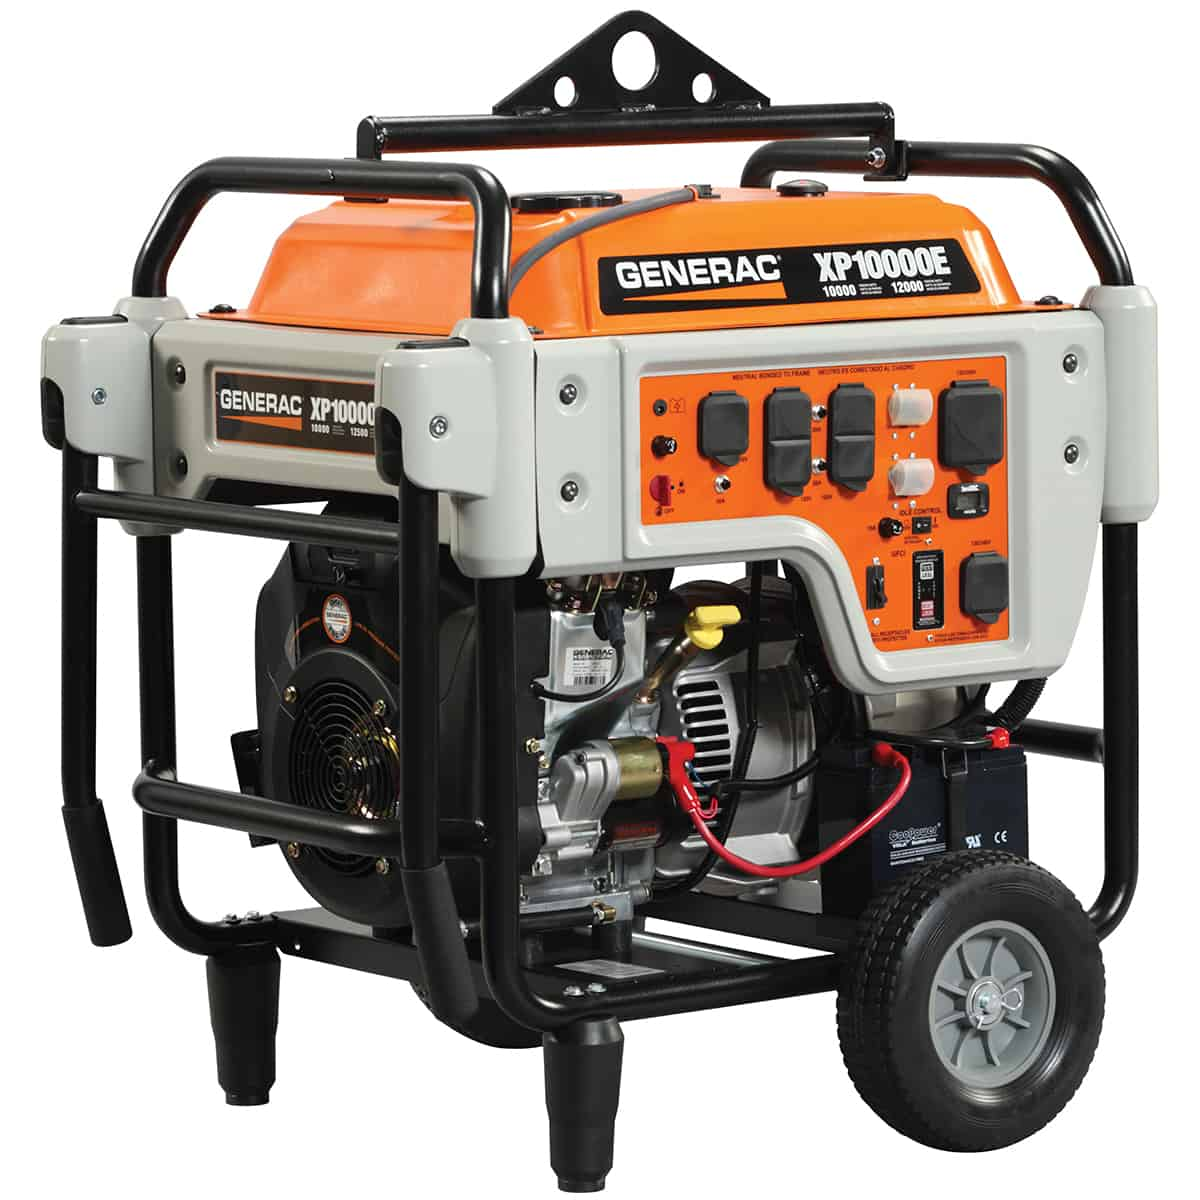 Generac 10000 Watt Generator >> On The Job Power: Portable Generators for Commercial Use | Norwall PowerSystems Blog